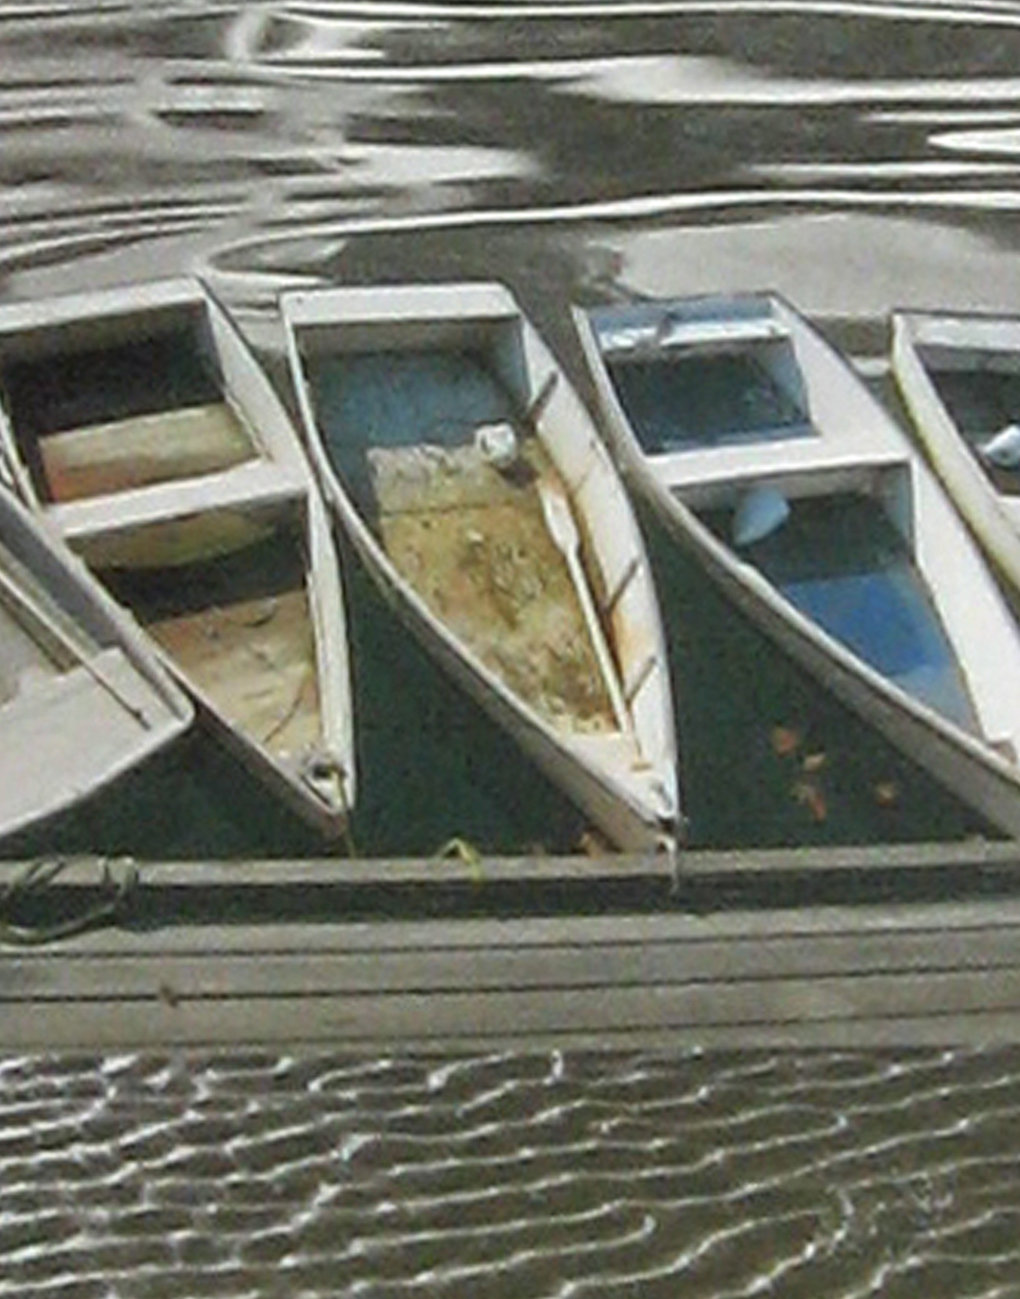 20140109-perkins-cove-boats-zoom-mike-tim-jpg.jpg